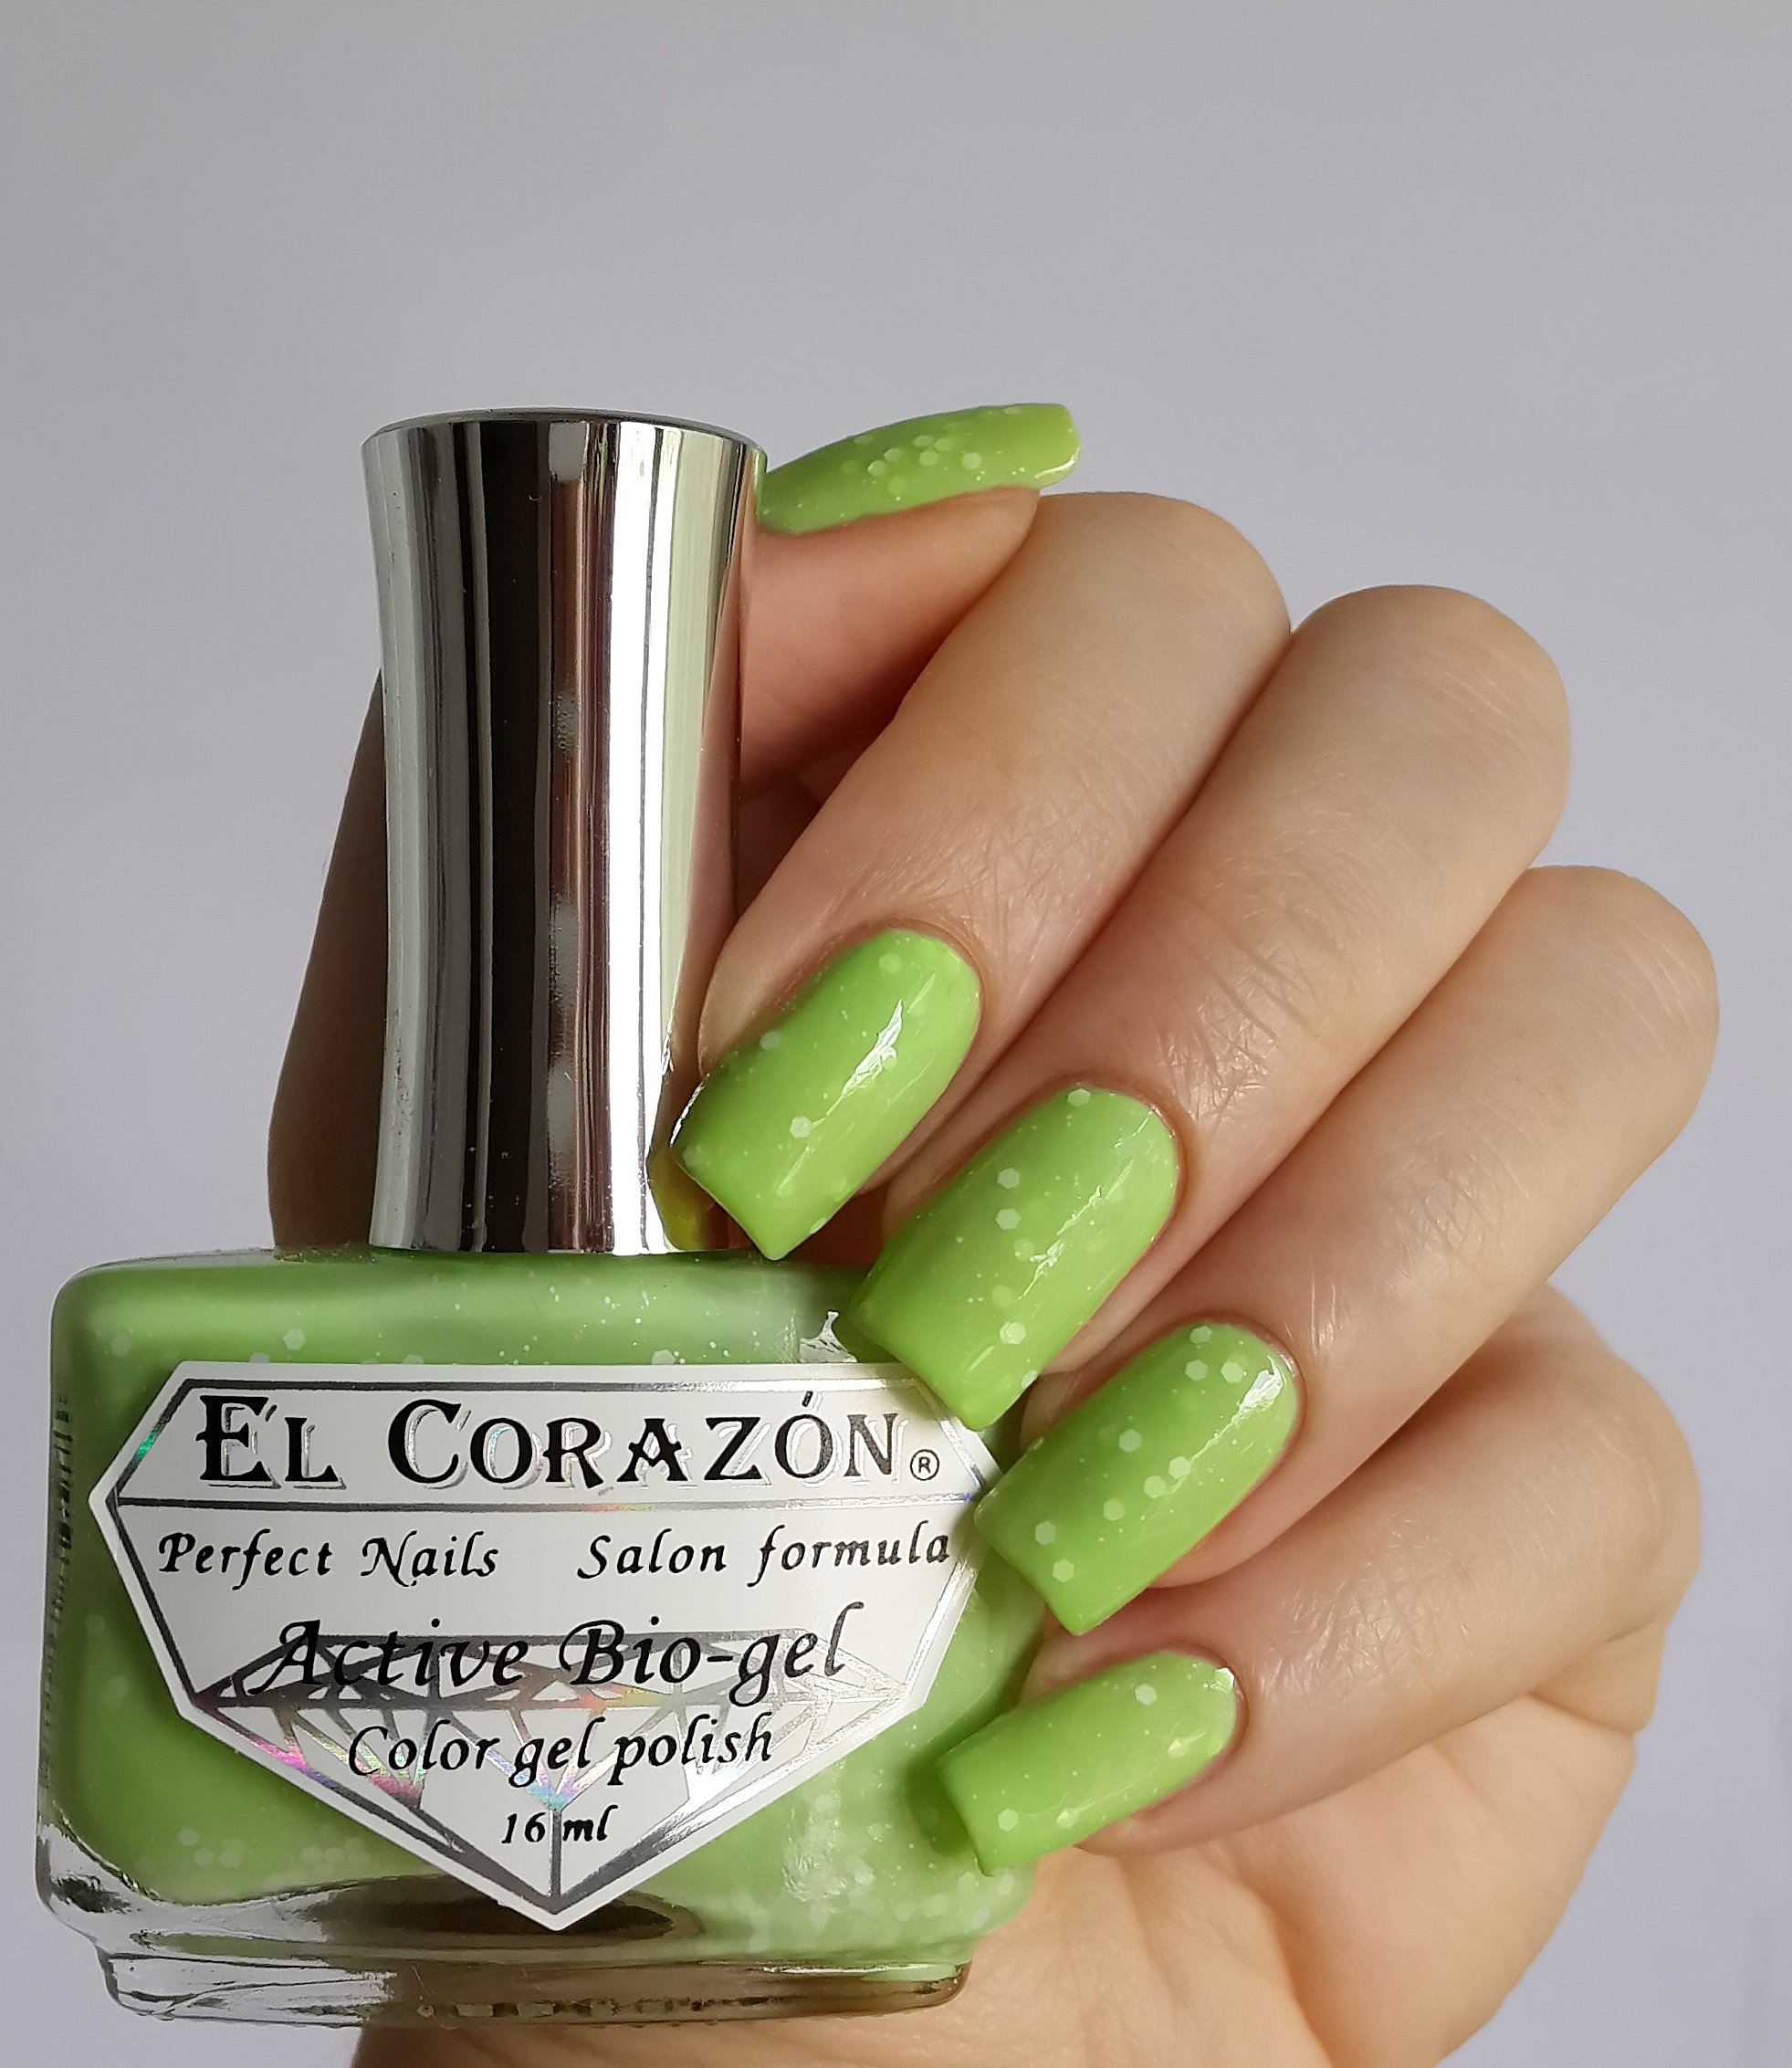 EL Corazon Active Bio-gel Color gel polish Fashion girl on a picnic №423/203